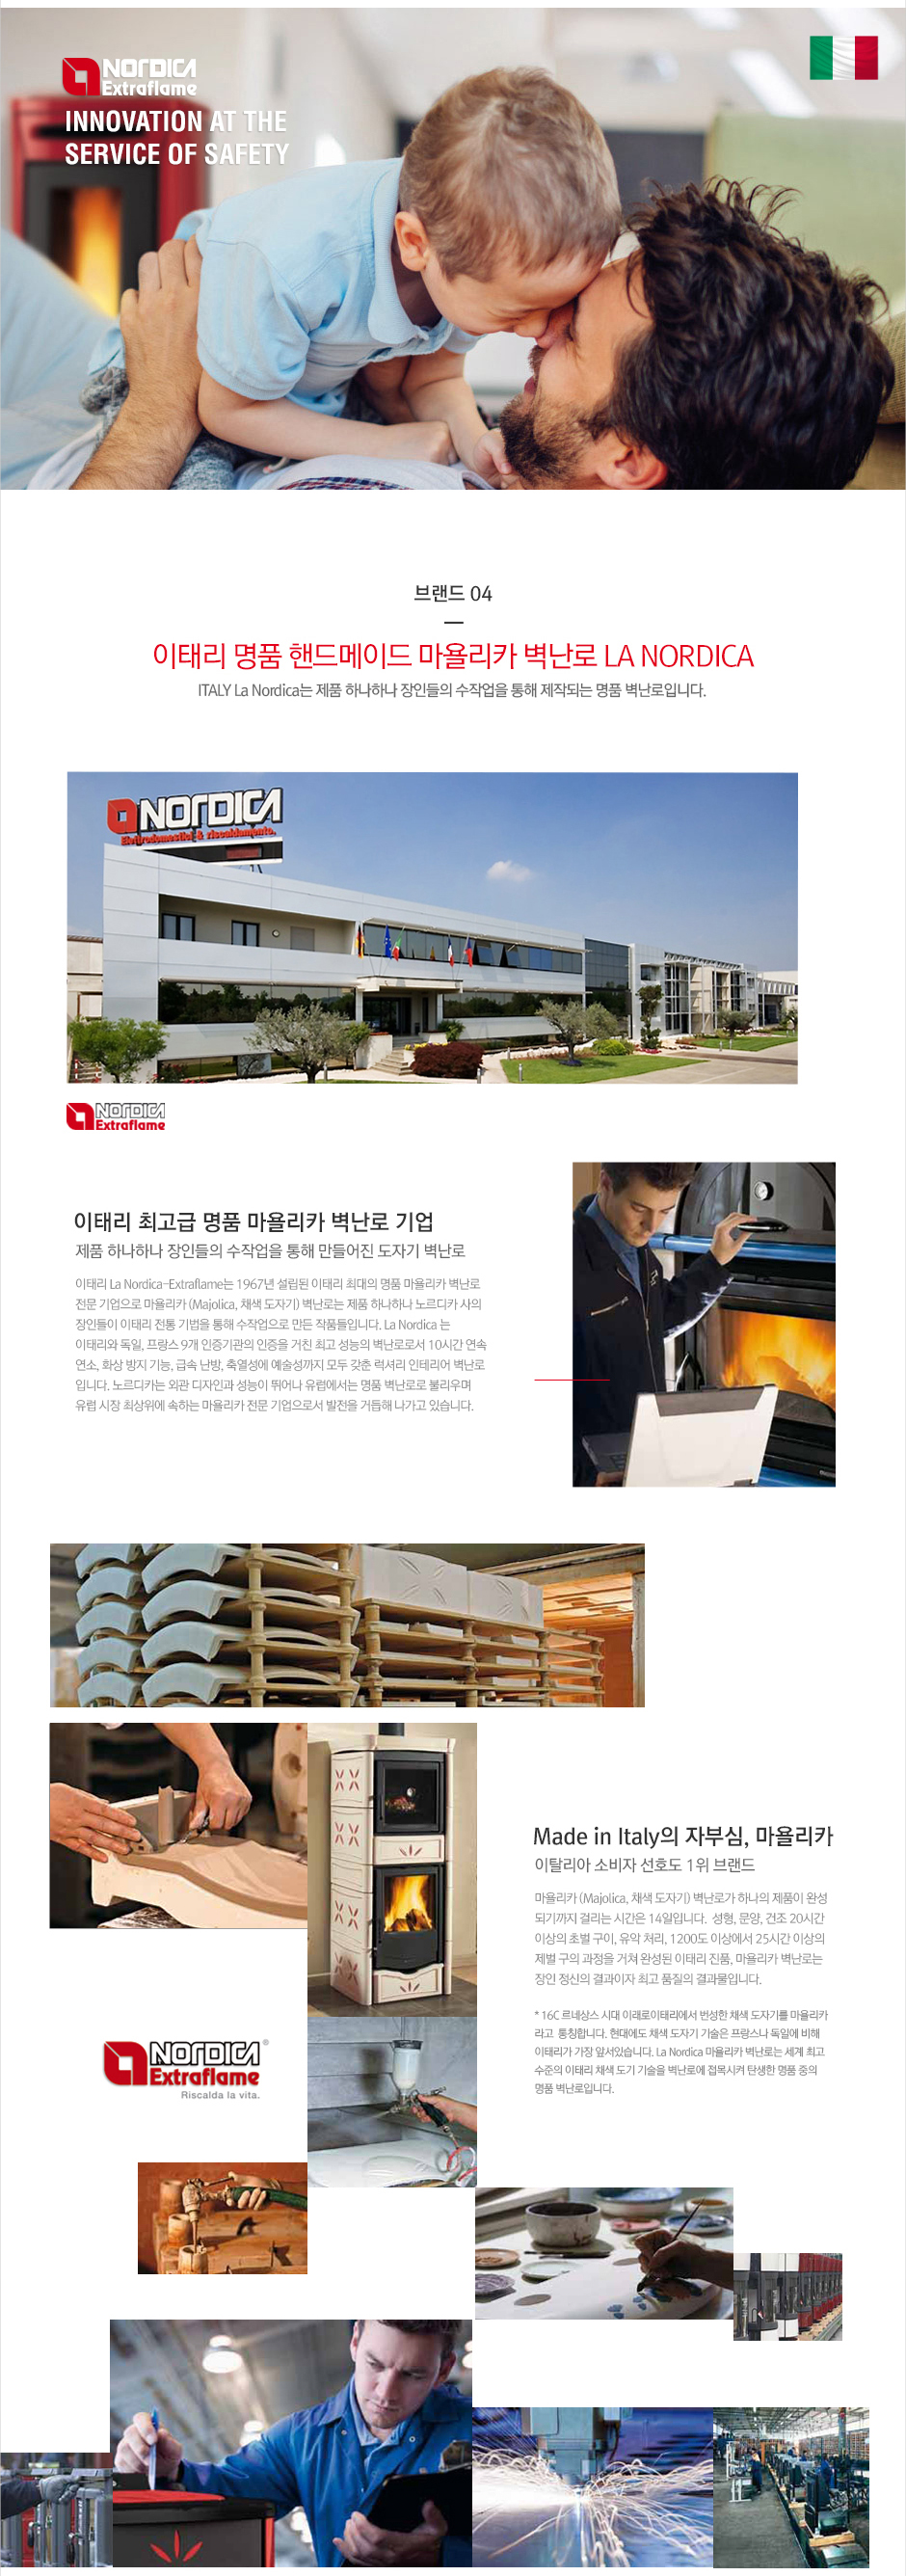 company_introduce_0602_5_1.jpg